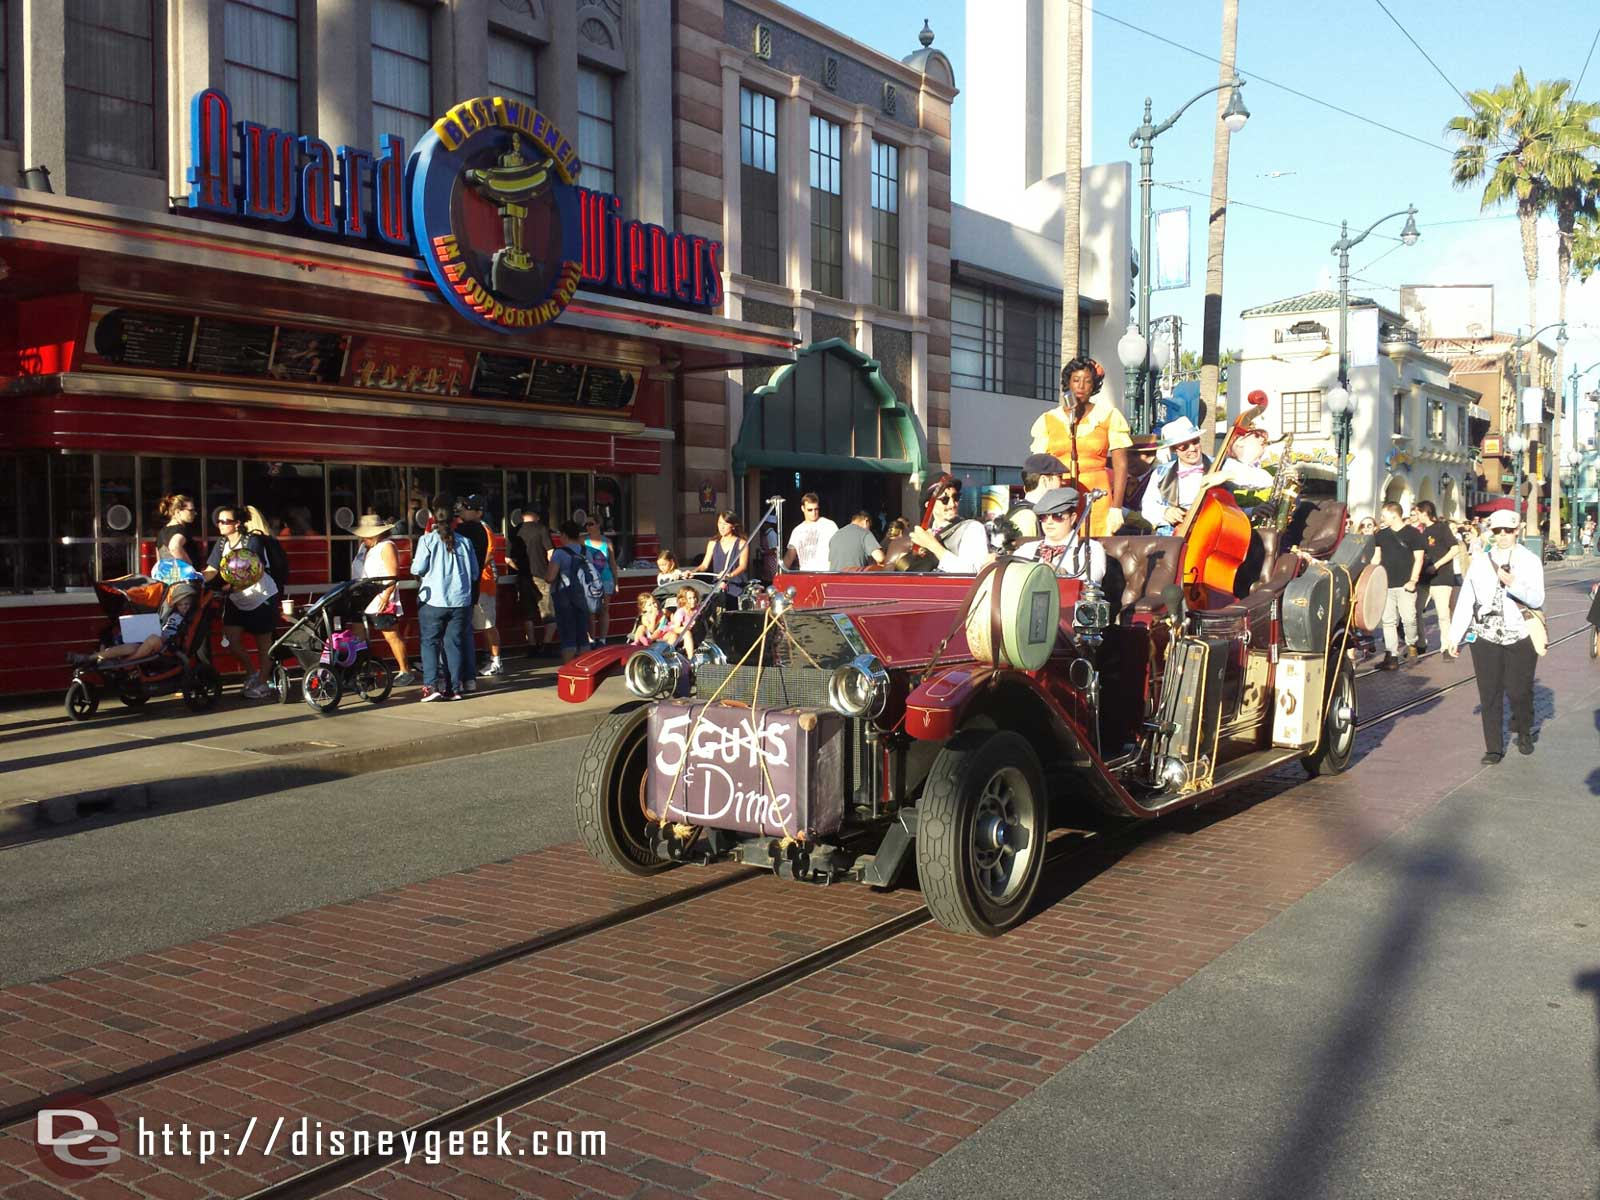 5 & Dime passing by on Hollywood Blvd in Disney California Adventure